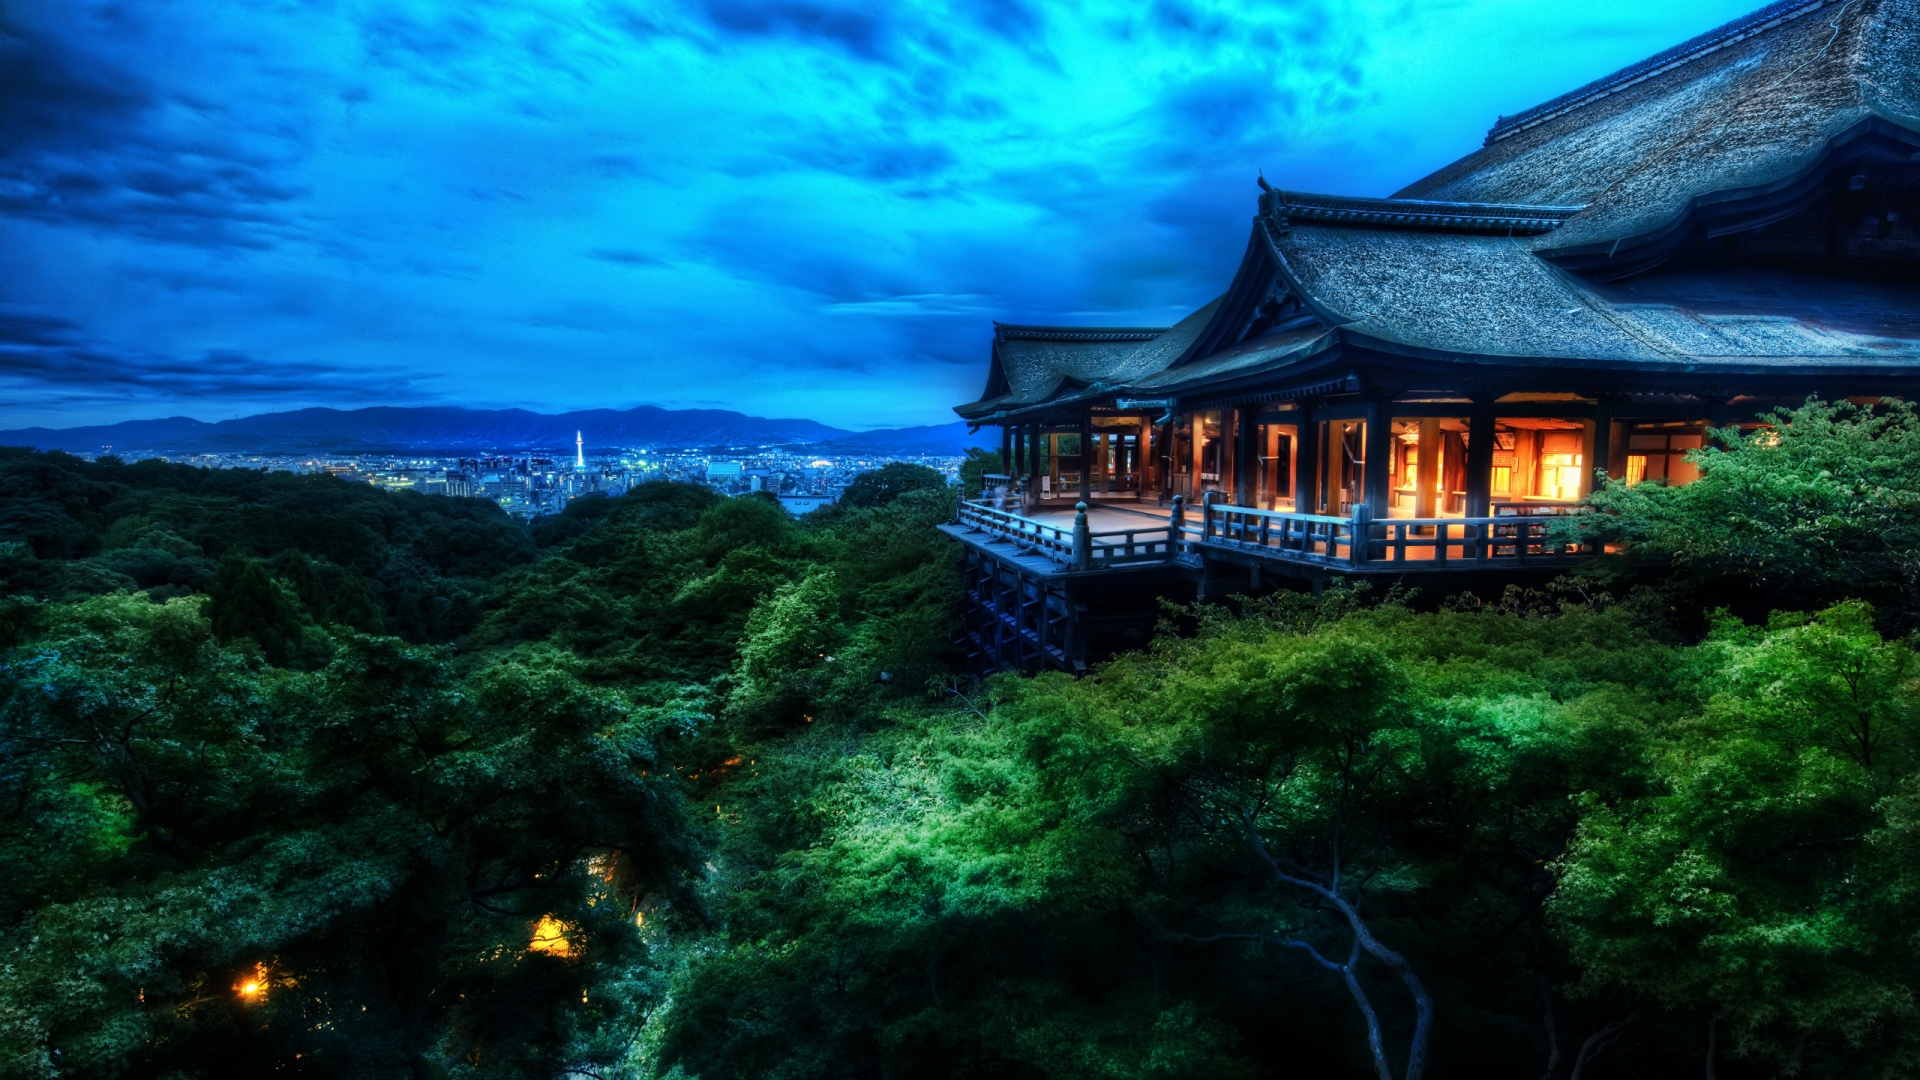 1920x1080 The Treetop Temple Protects Kyoto Japan Desktop PC And Mac Wallpaper